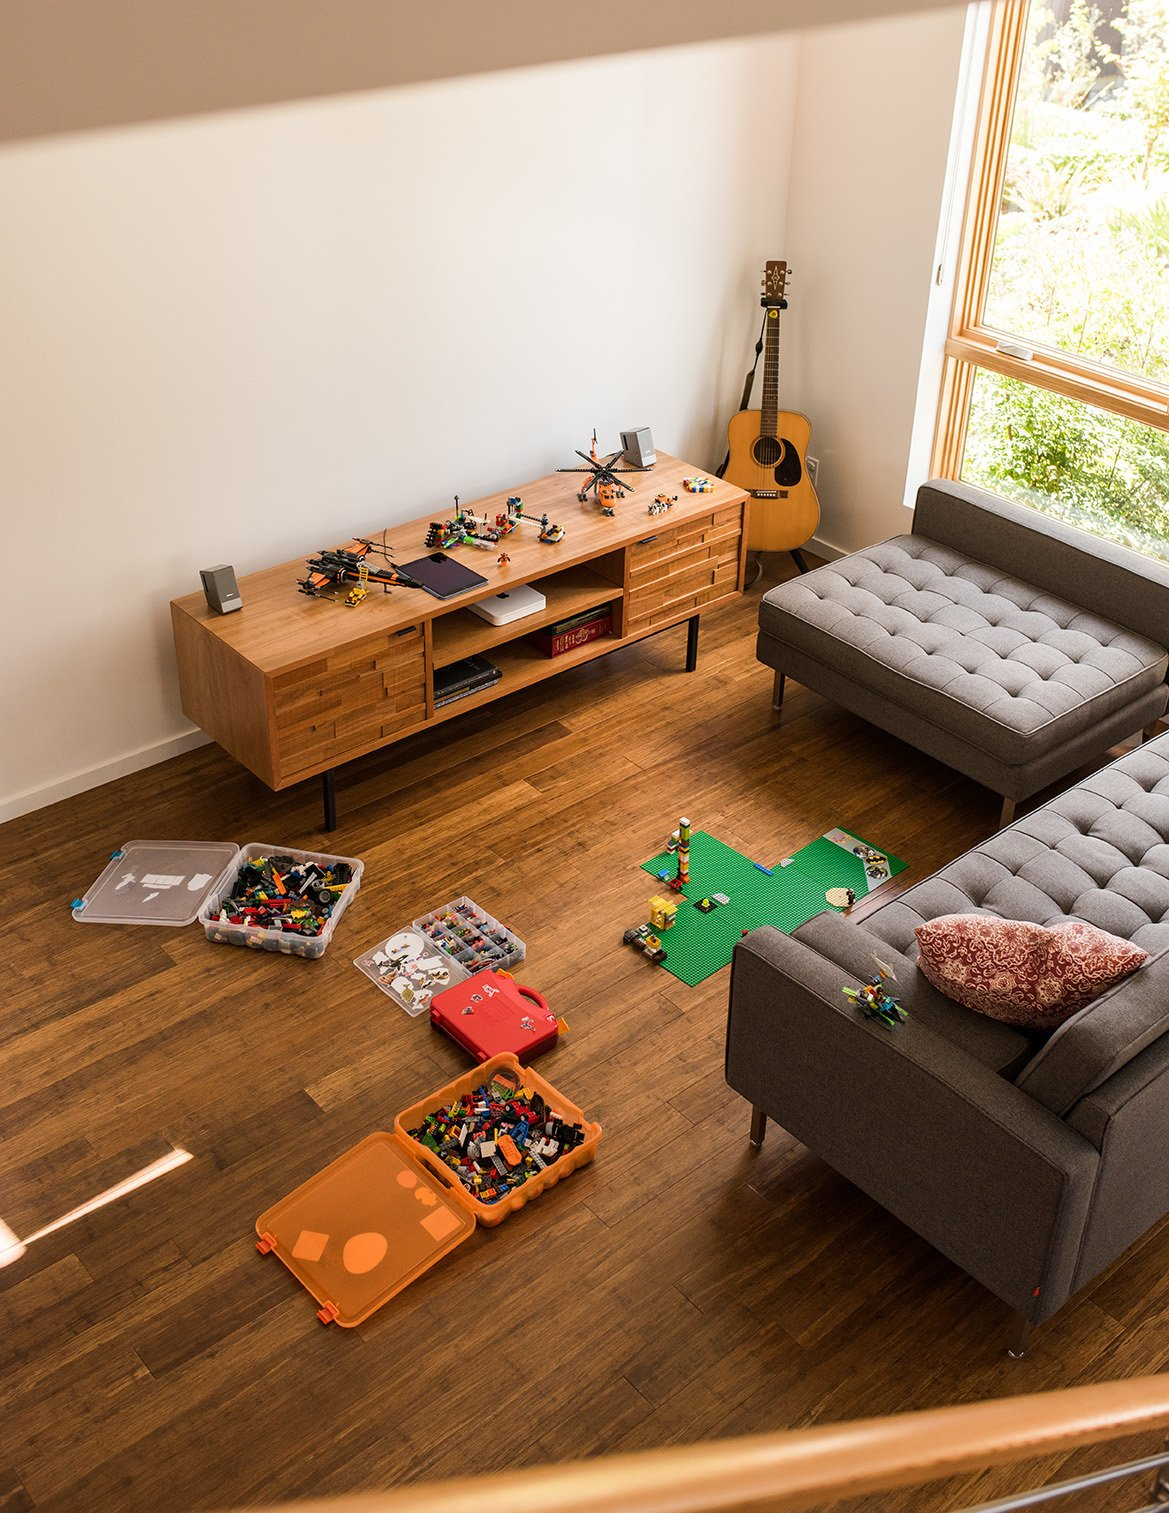 """Chris and Wendy Kozina live with their son, Ben, in a """"Tallis"""" style town house. They selected bamboo floors for the 1,155-square-foot, two-bedroom interior. The family strives to cap their possessions at 500 items—Legos not included. In the living room, an Innes media cabinet from Room & Board is paired with a Gus Modern sectional.  Photo 12 of 15 in It Takes a Village"""